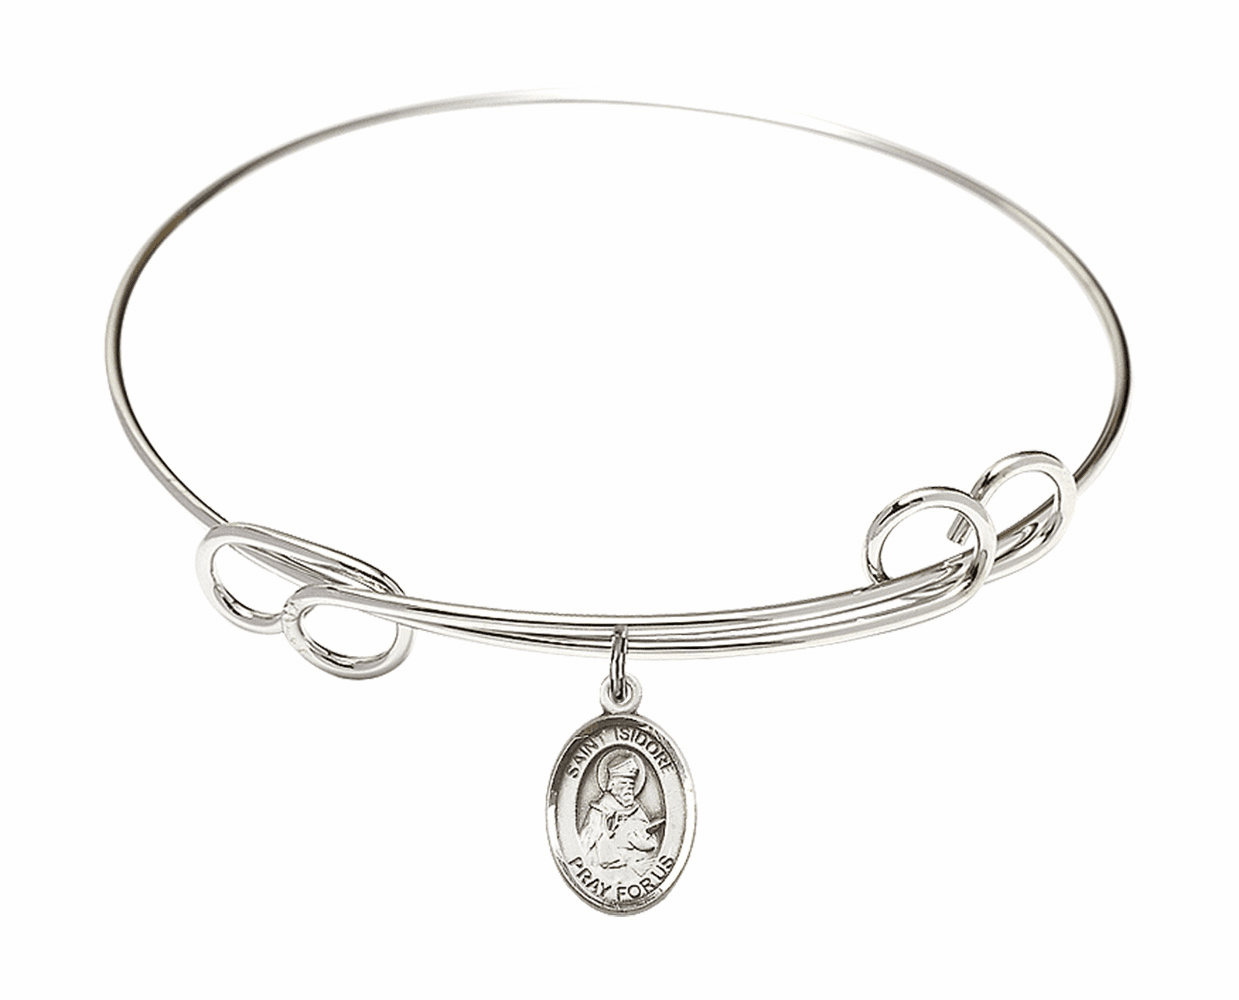 Round Loop St Isidore of Seville Bangle Charm Bracelet by Bliss